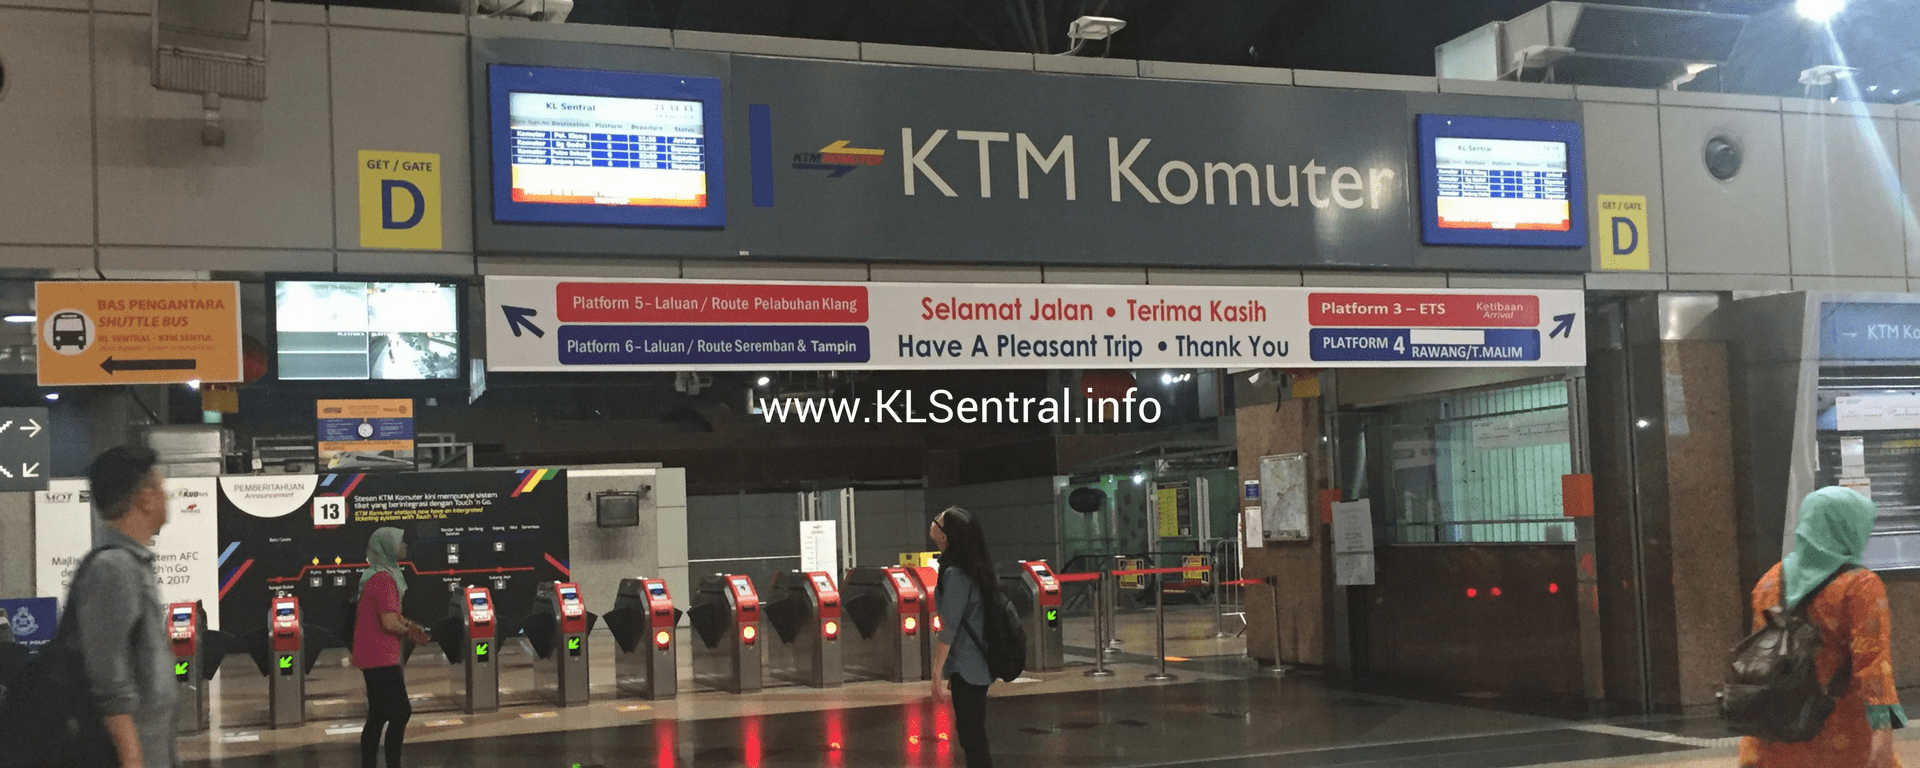 KTM-komuter-station-entrance-kl-sentral